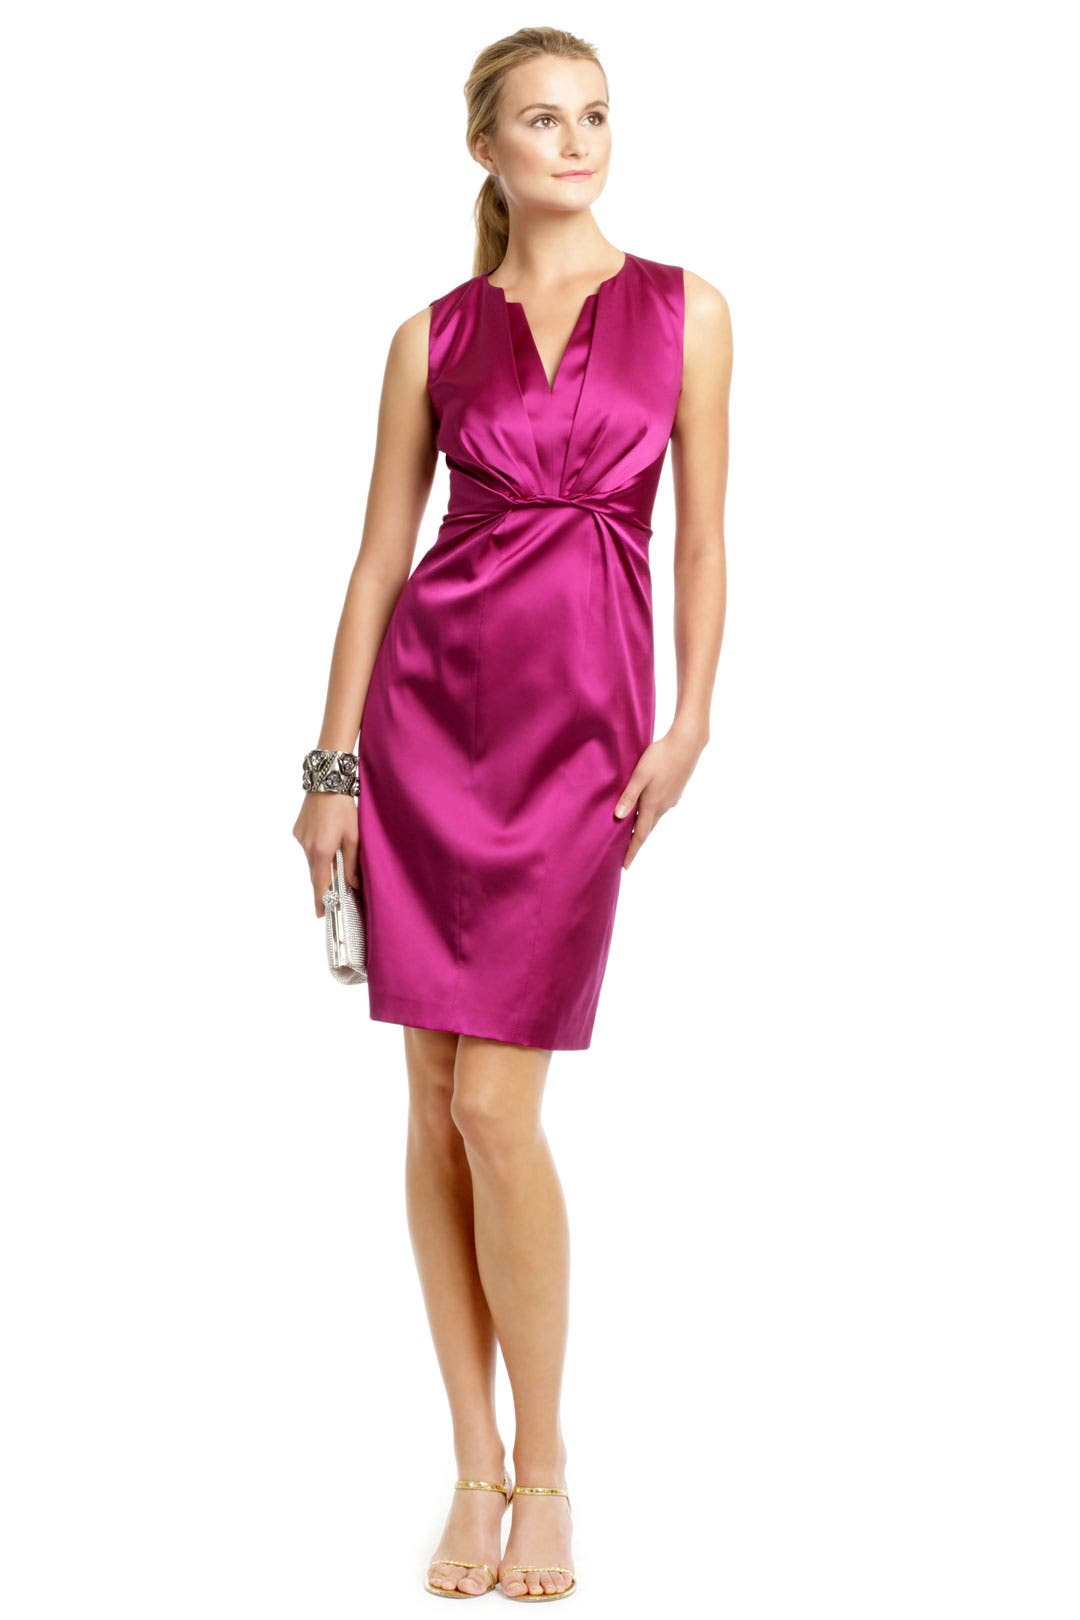 Raspberry Satin Twist Dress by Elie Tahari